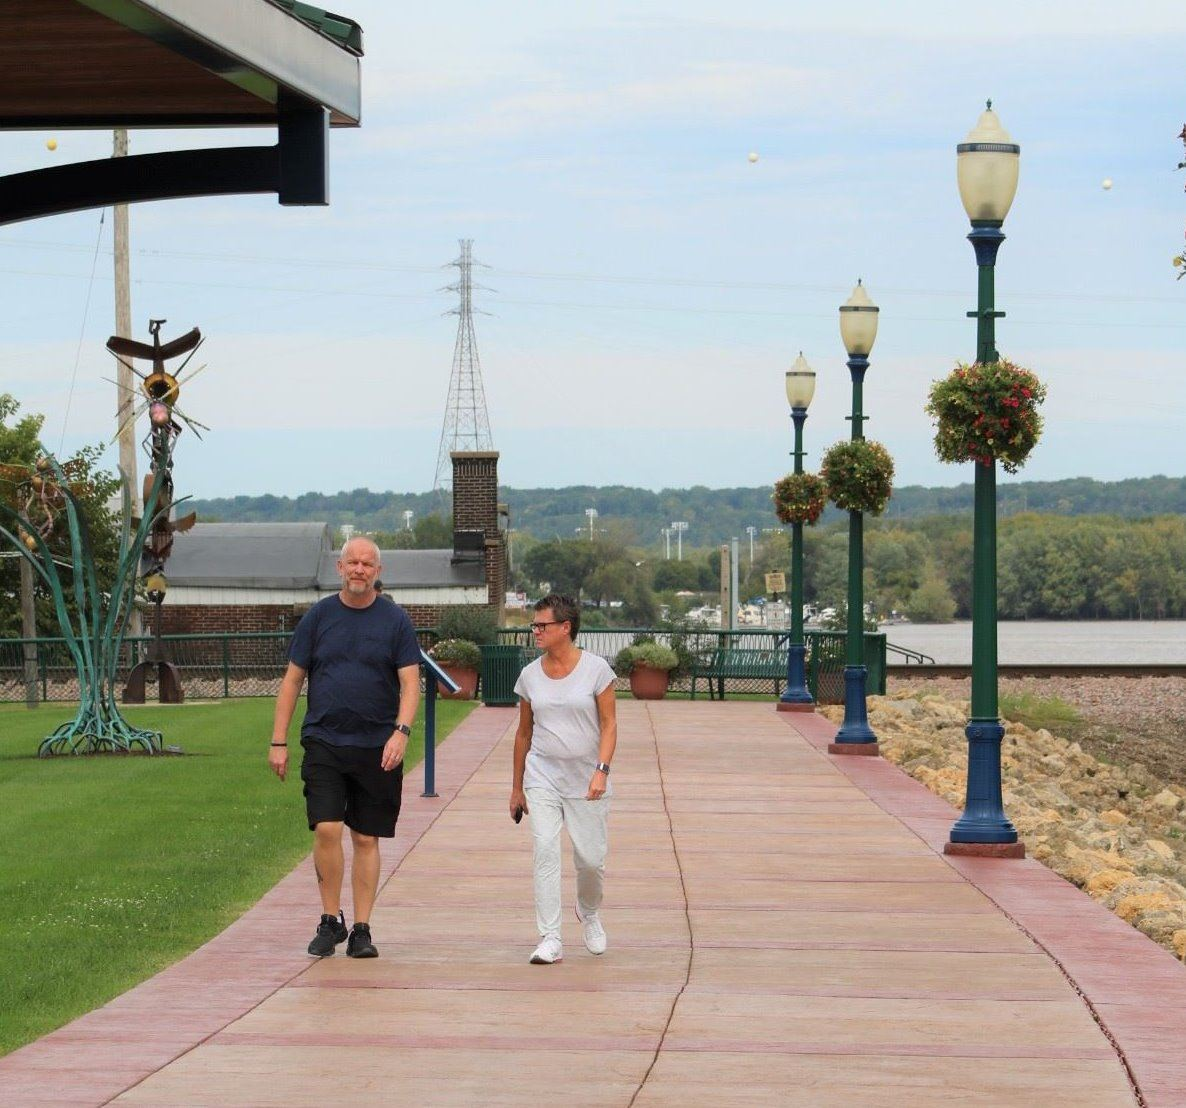 The Mississippi Riverwalk may be rented for public events for $200.00 per day.